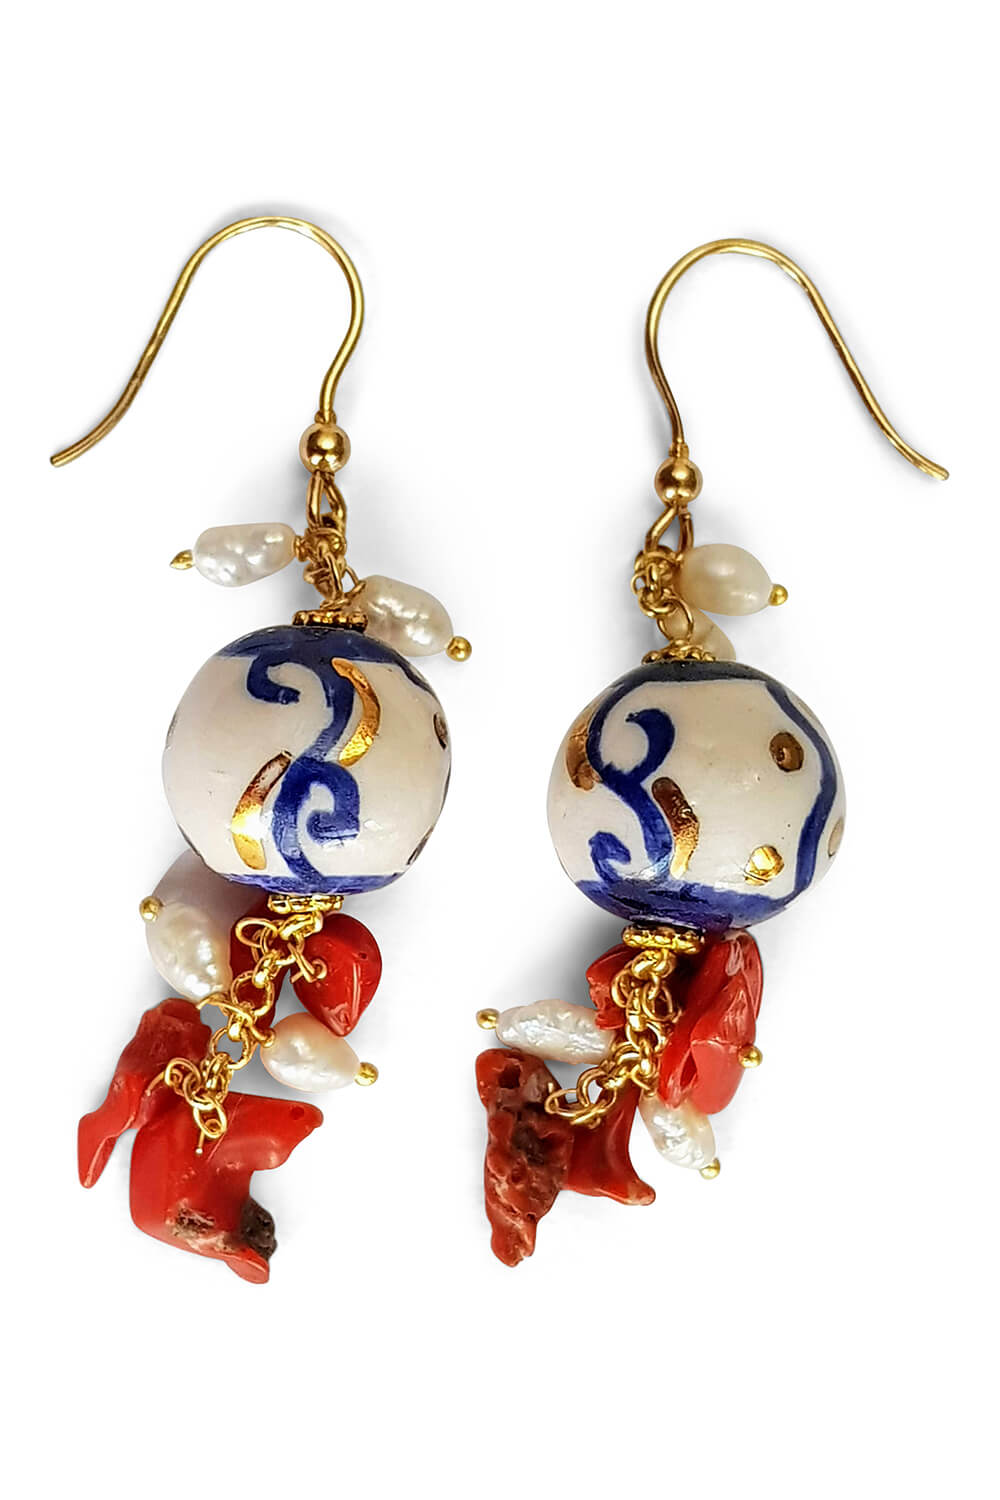 blue and white earrings with corals and pearls